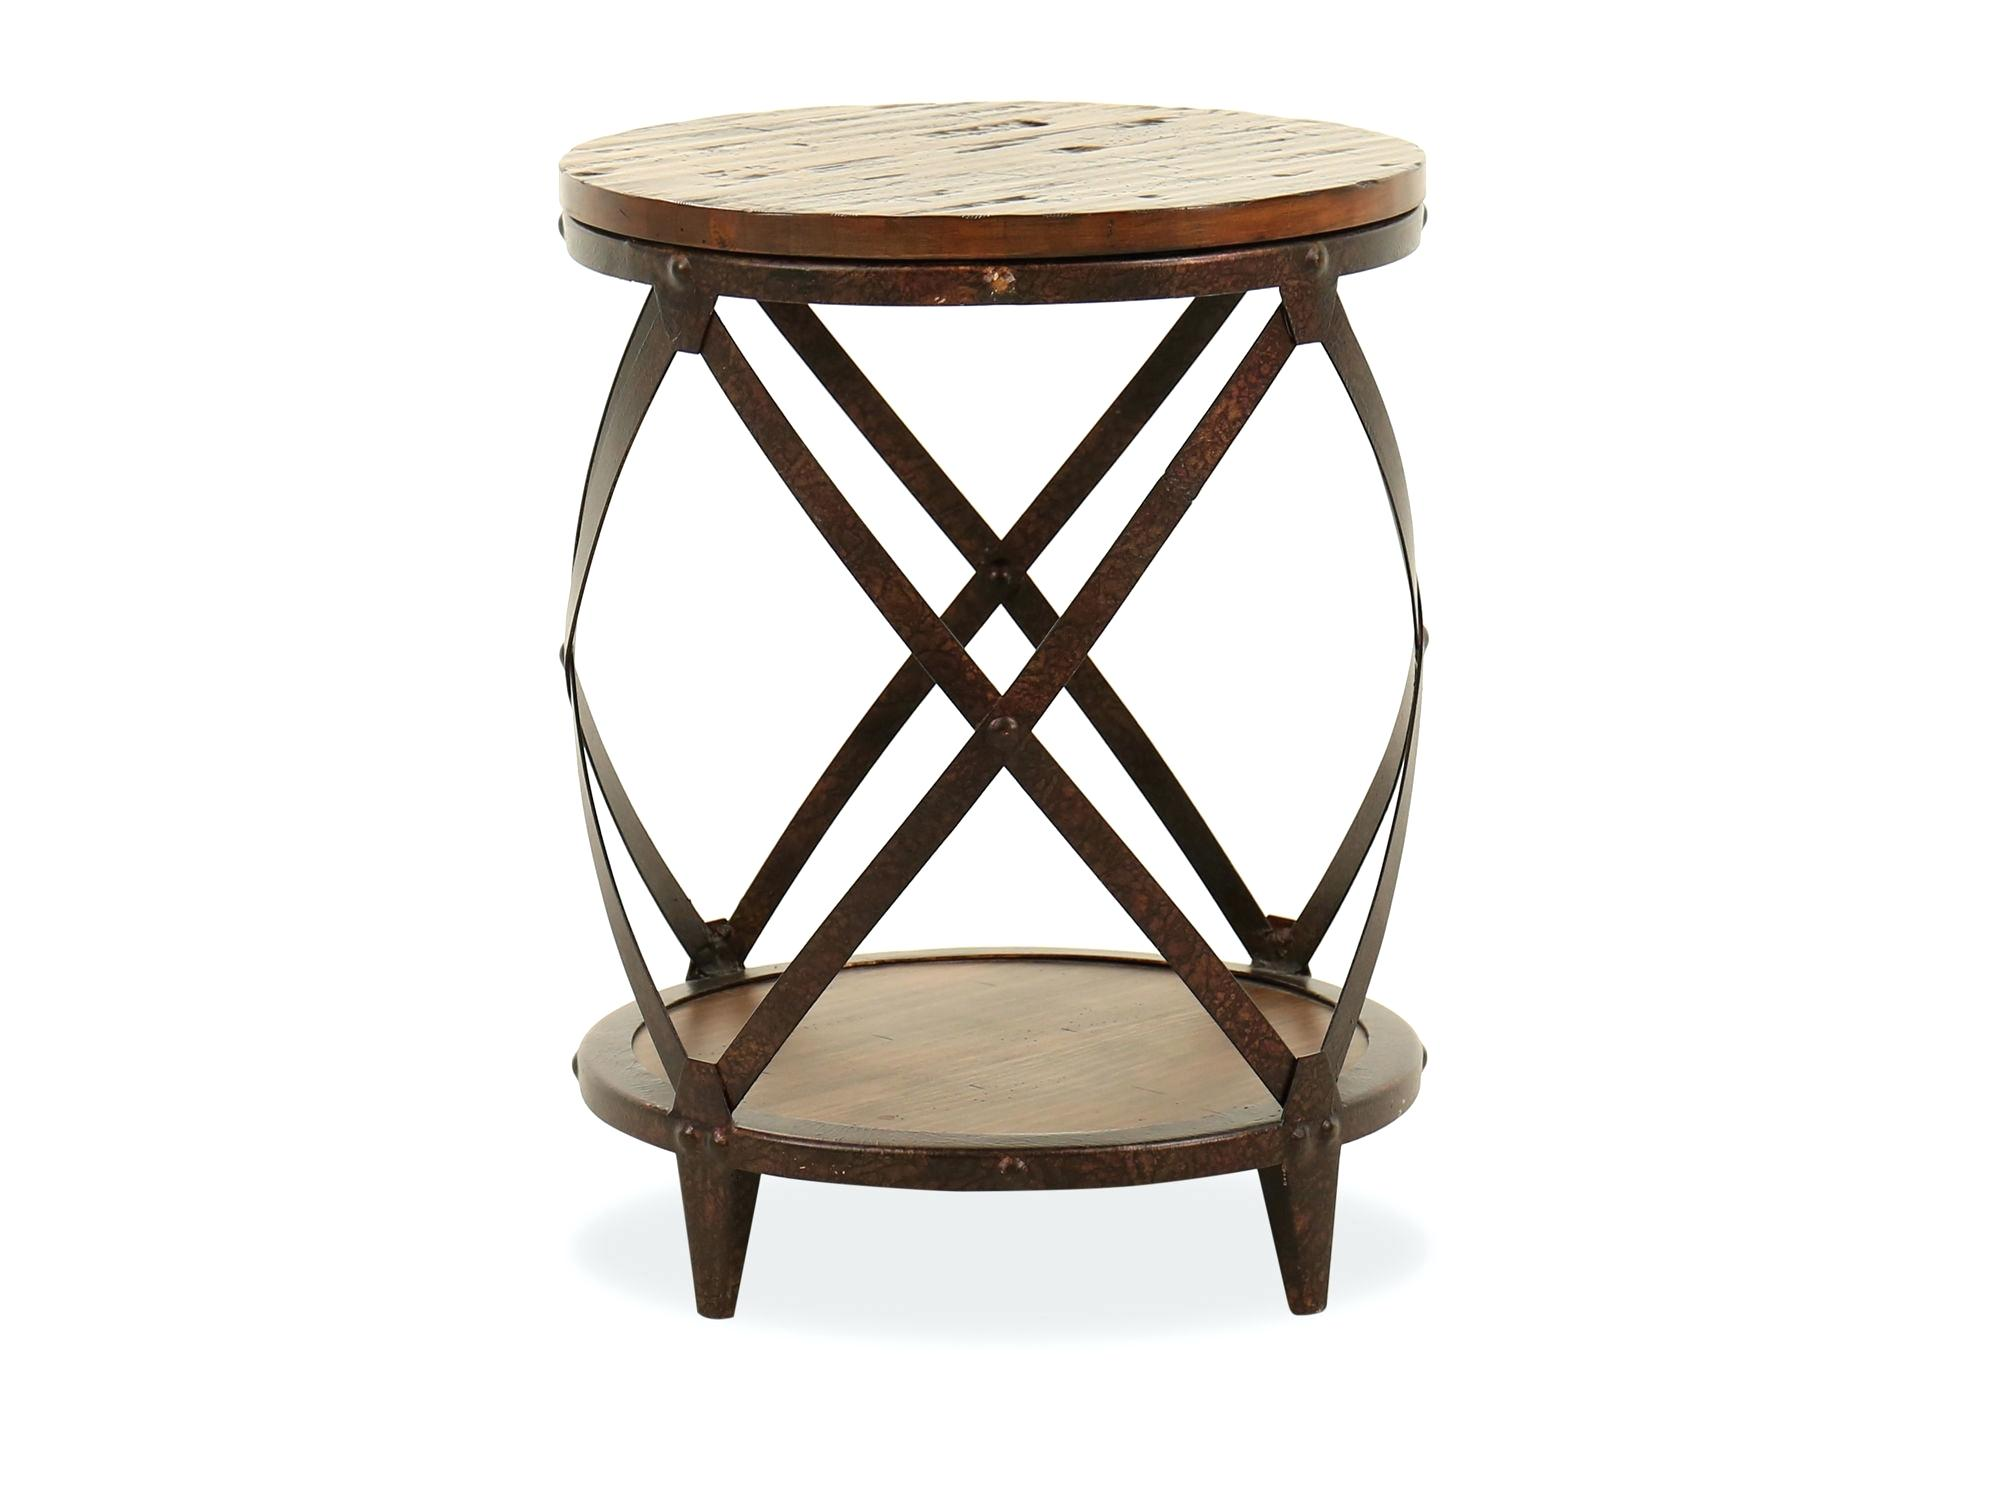 round iron accent table wrought tables for living room cobalt mosaic black outdoor ocean wave distressed transitional rich brown kitchen won tall full size dining placemats and